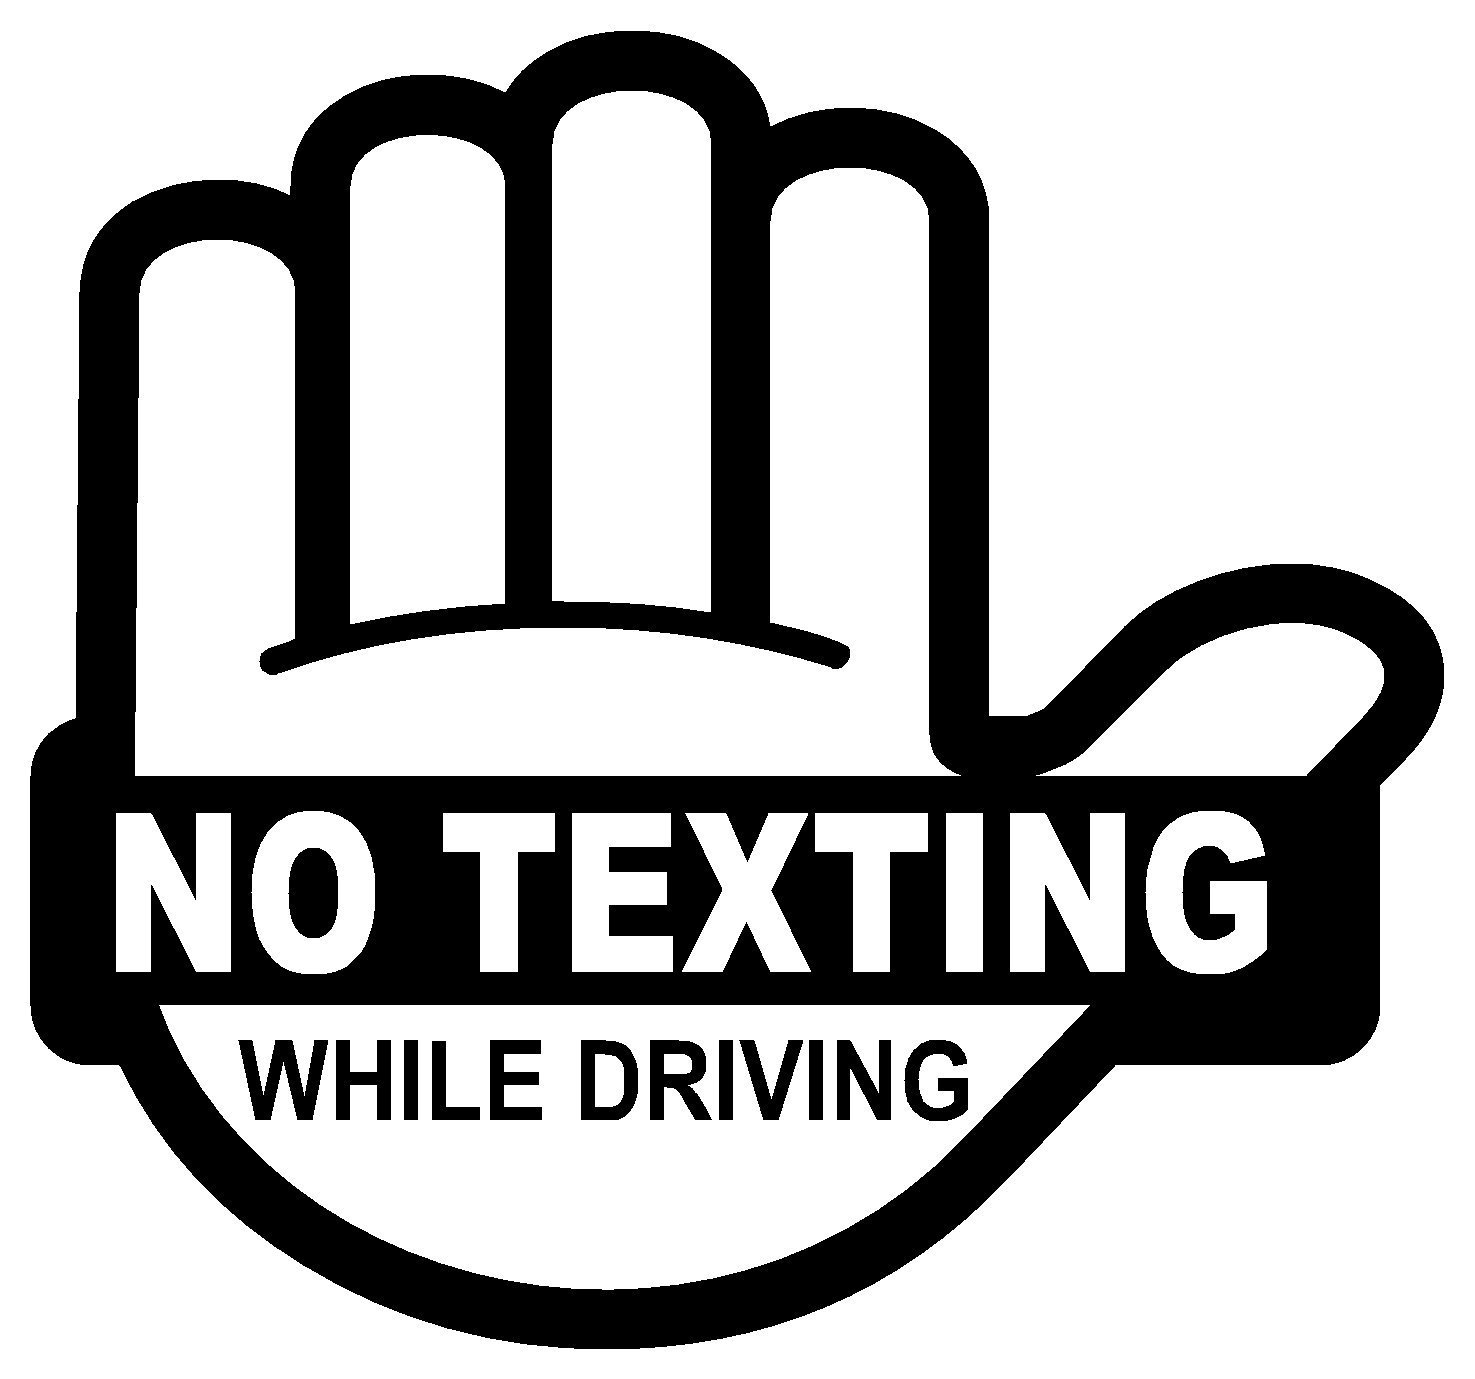 Amazon No Texting while driving sticker Automotive